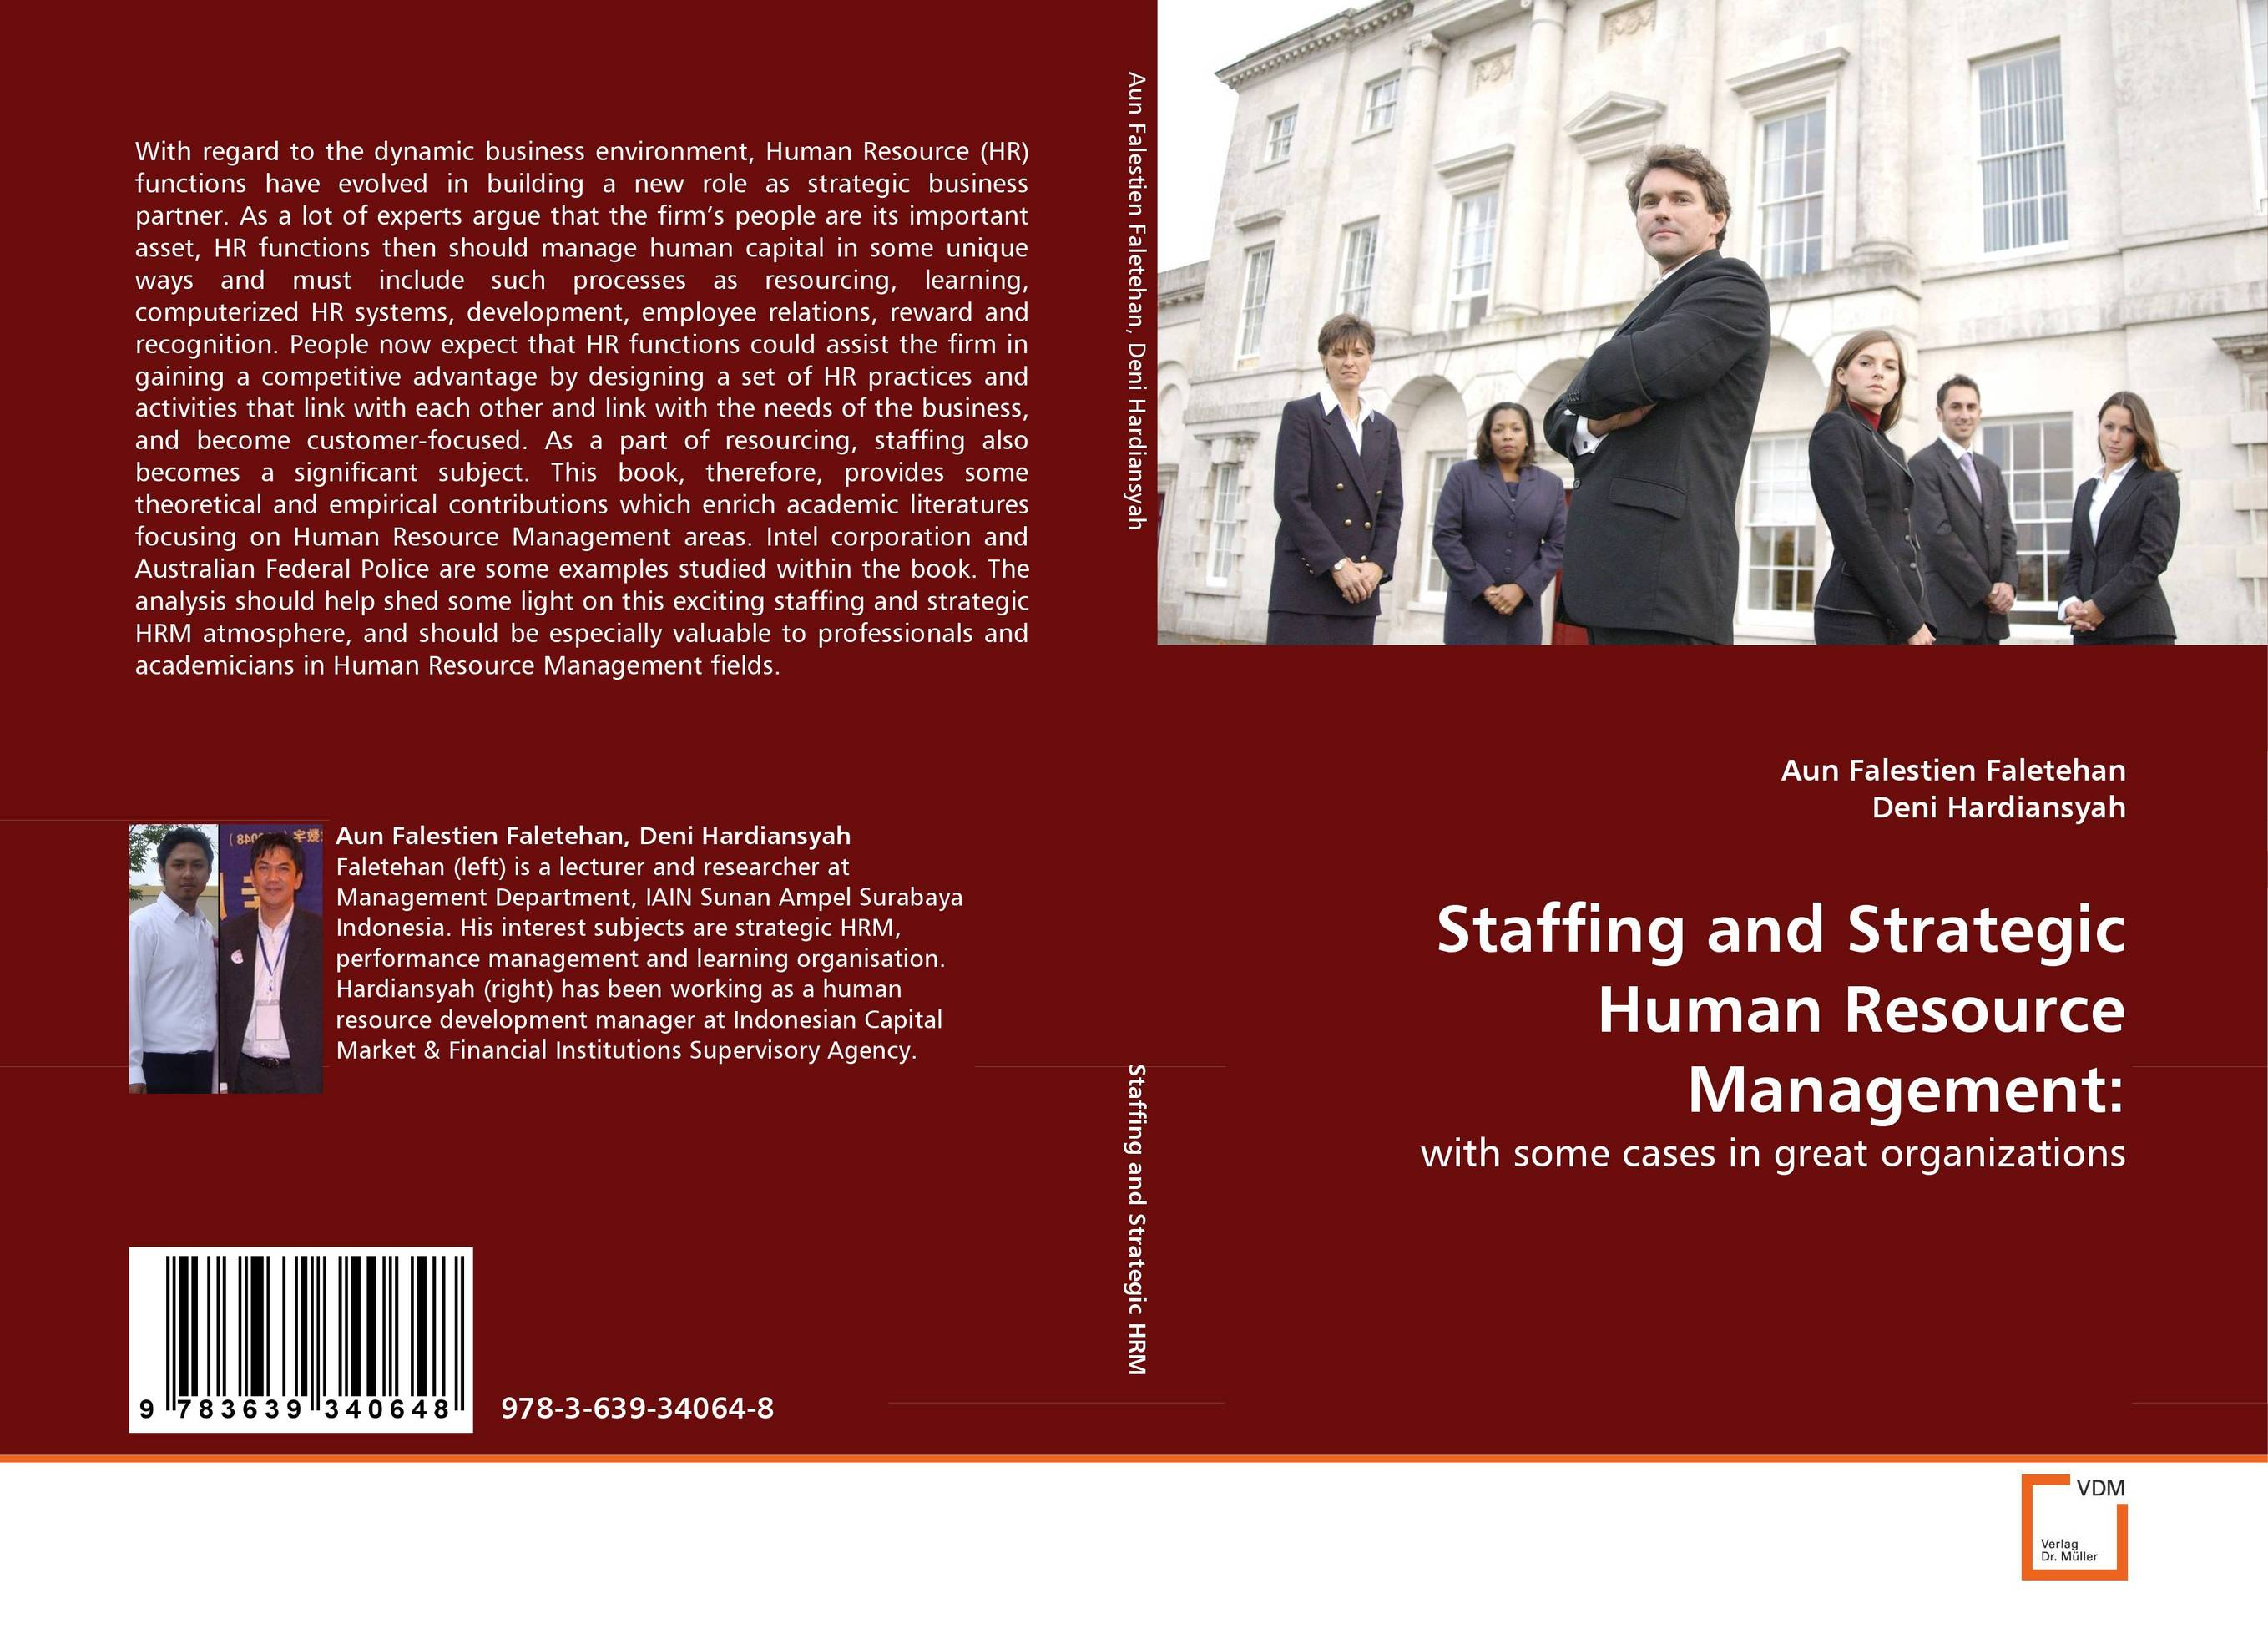 Staffing and Strategic Human Resource Management: applied practices in strategic human resource planning and management